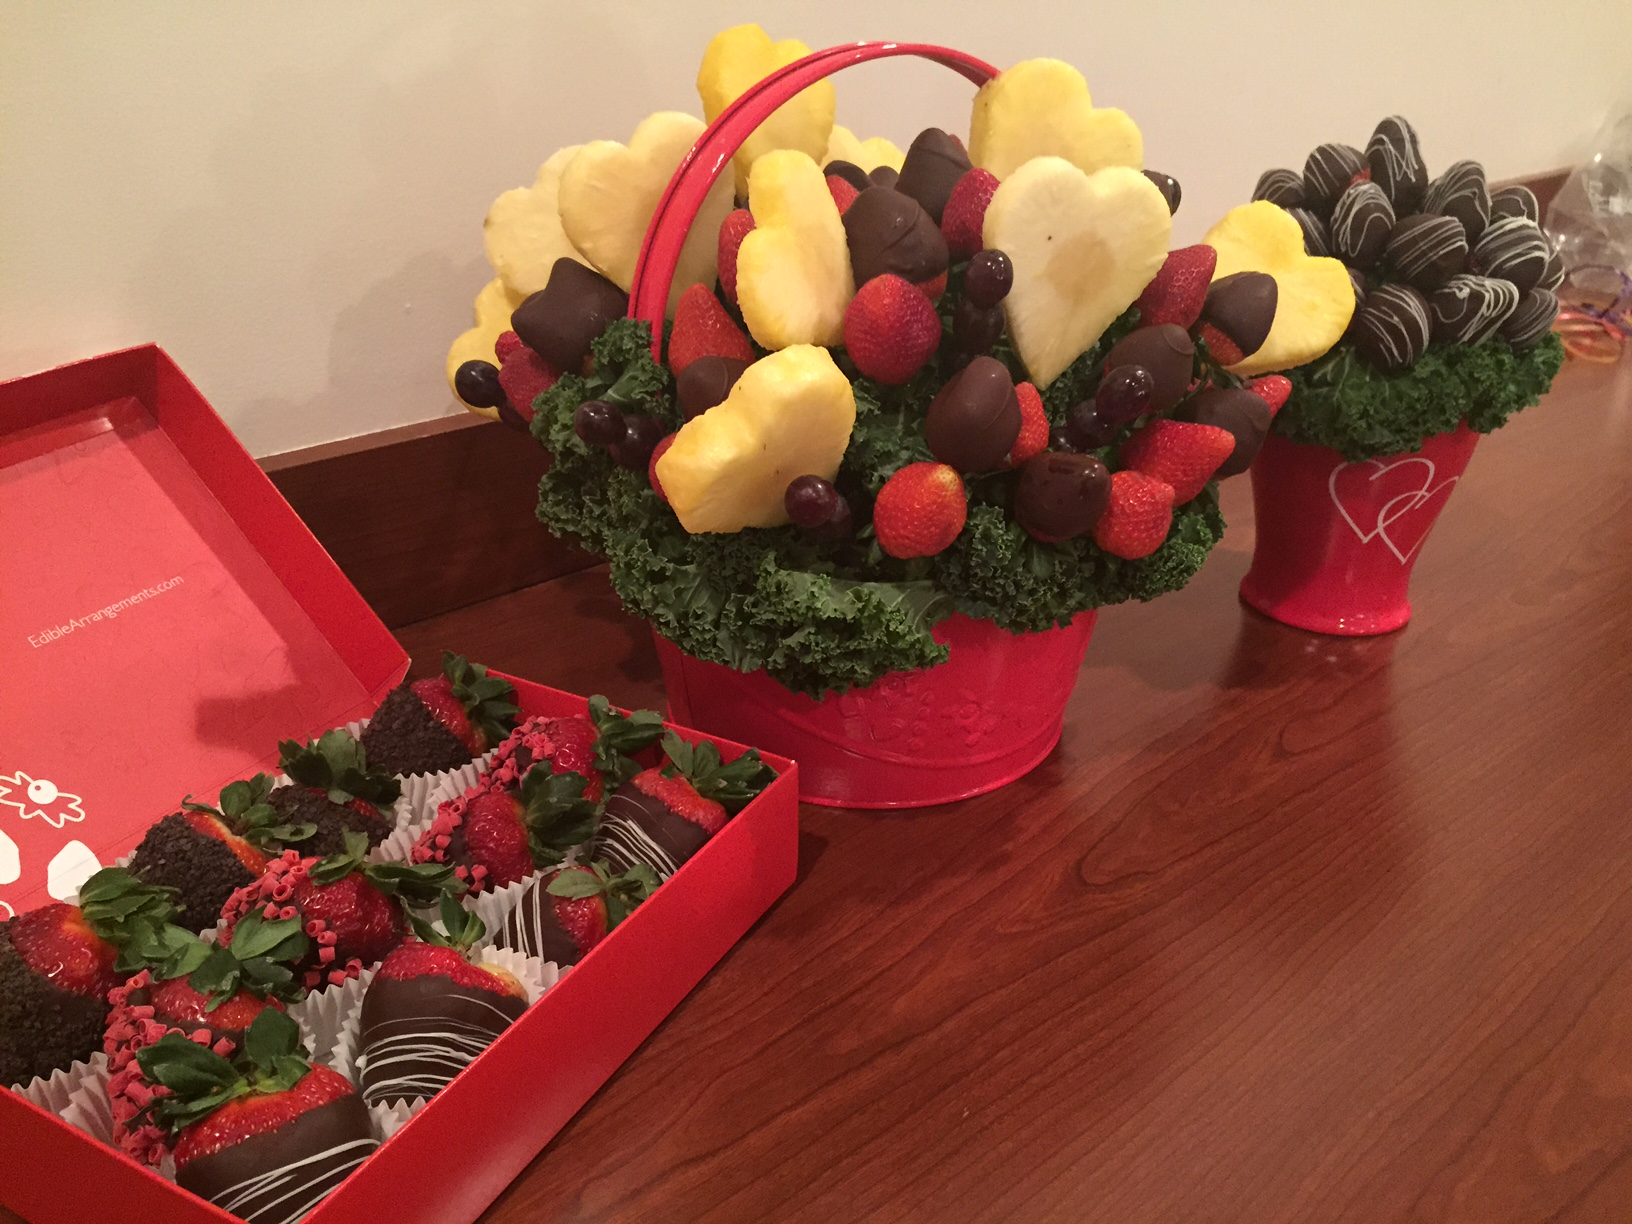 Edible Arrangements For Valentine 39 S Day Monday February